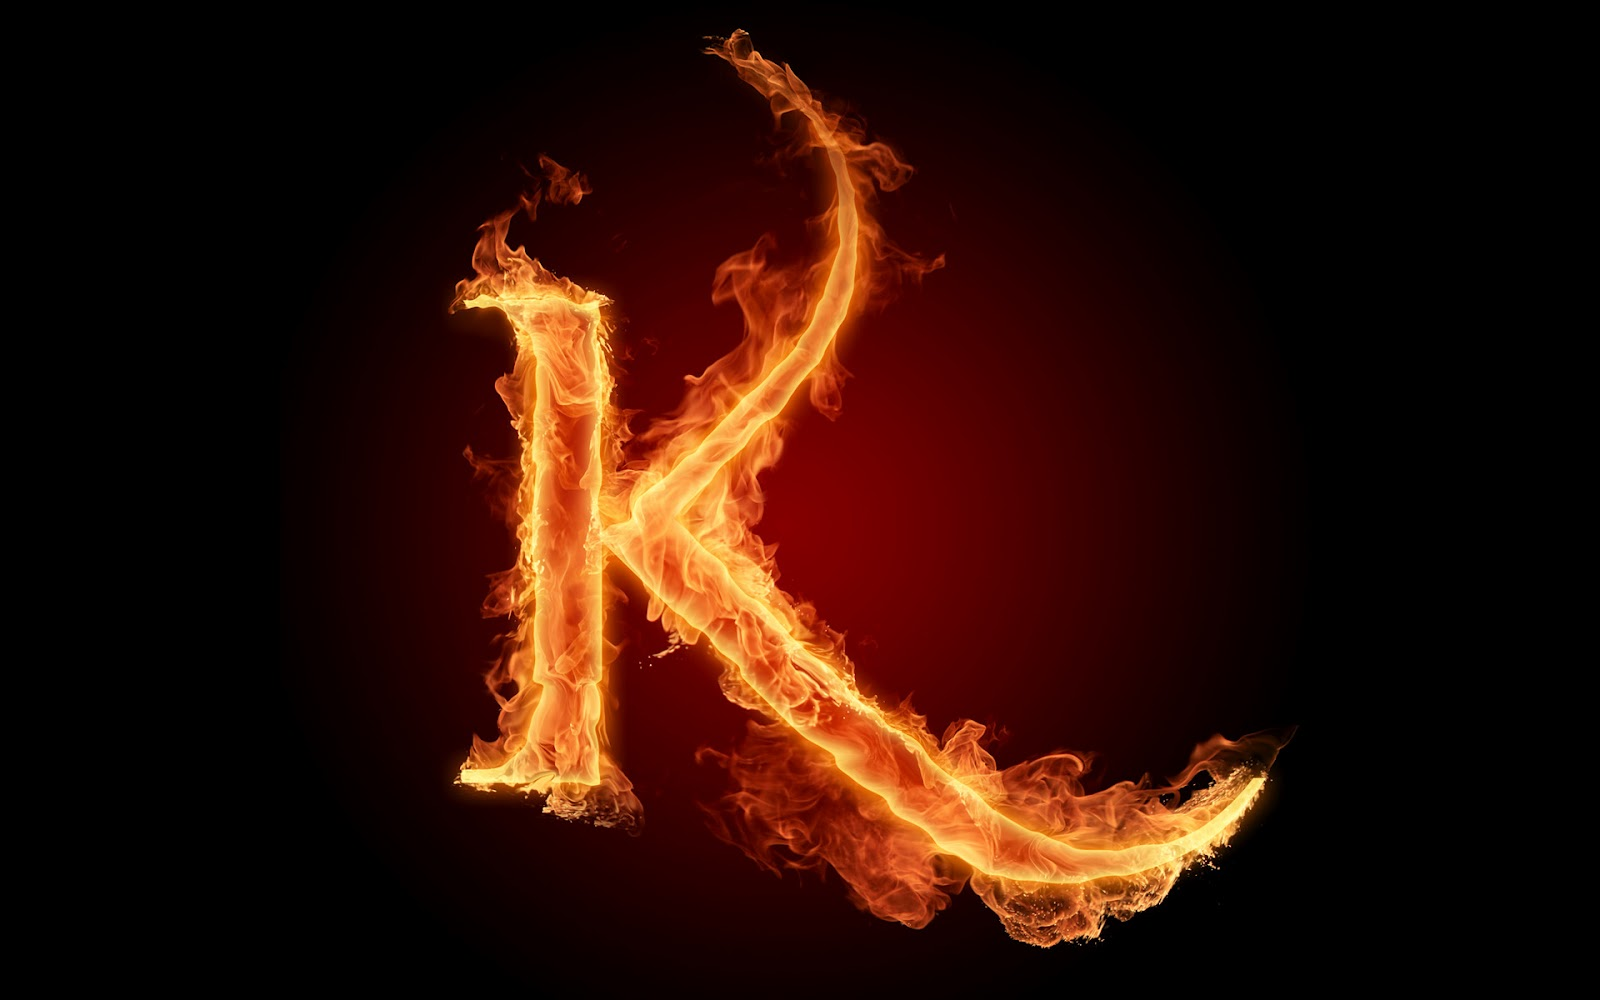 http://3.bp.blogspot.com/-wyFjYXqgEZQ/T0udcjLzECI/AAAAAAAAM9Q/QWcTS7YK7P0/s1600/the-fiery-english-alphabet-picture-k_1920x1200_73625.jpg